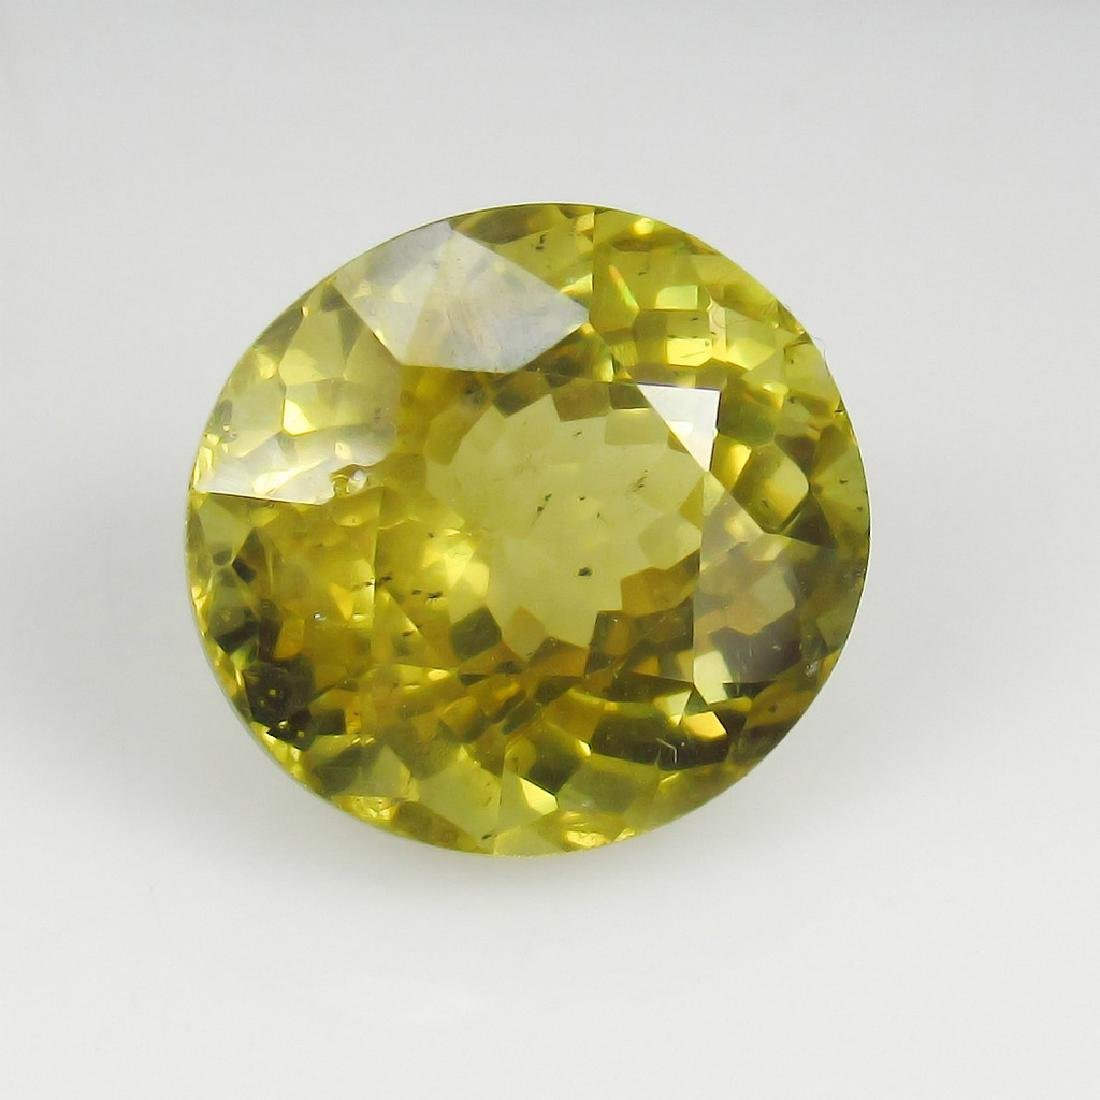 10.83 Ct Genuine Loose Good Luster Top Yellowish Green